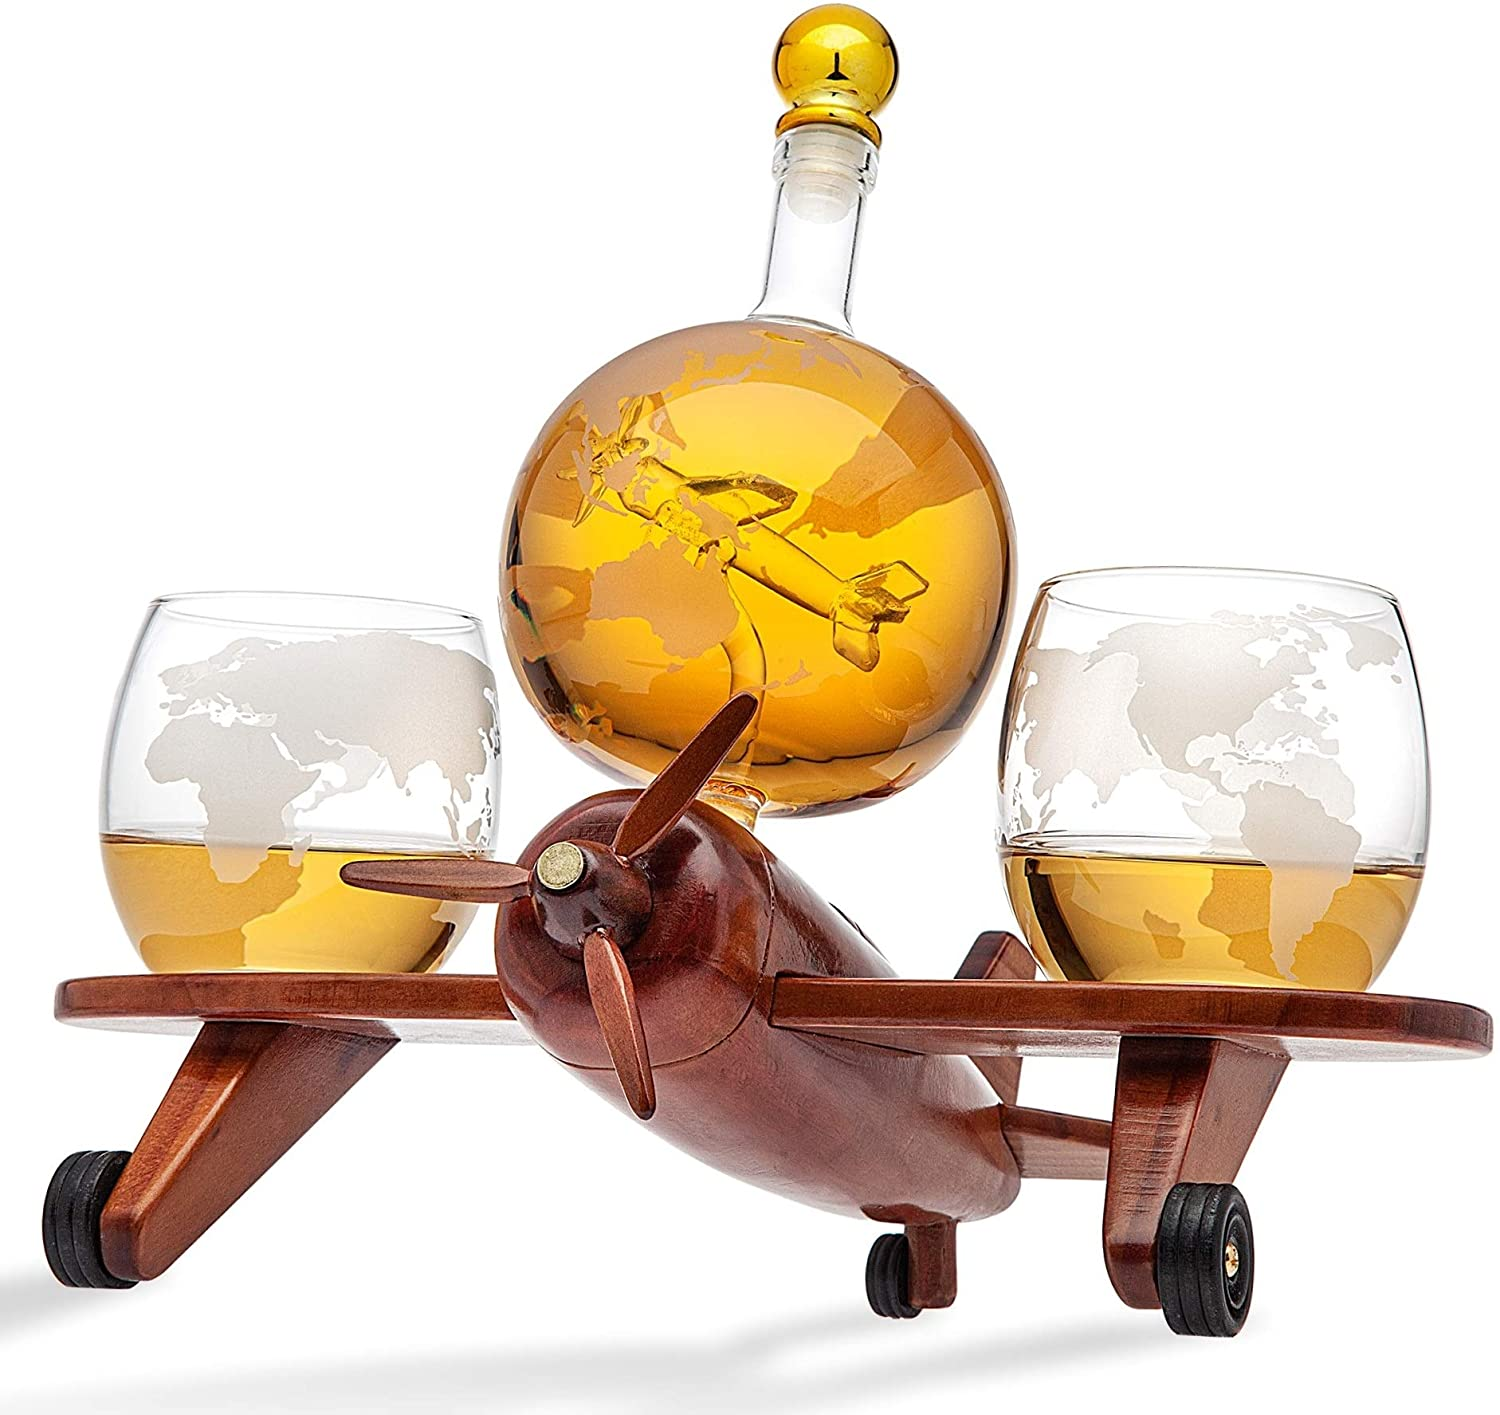 Godinger Whiskey Decanter Airplane Globe Set with 2 World Whisky Glasses - for Liquor Scotch Bourbon Vodka